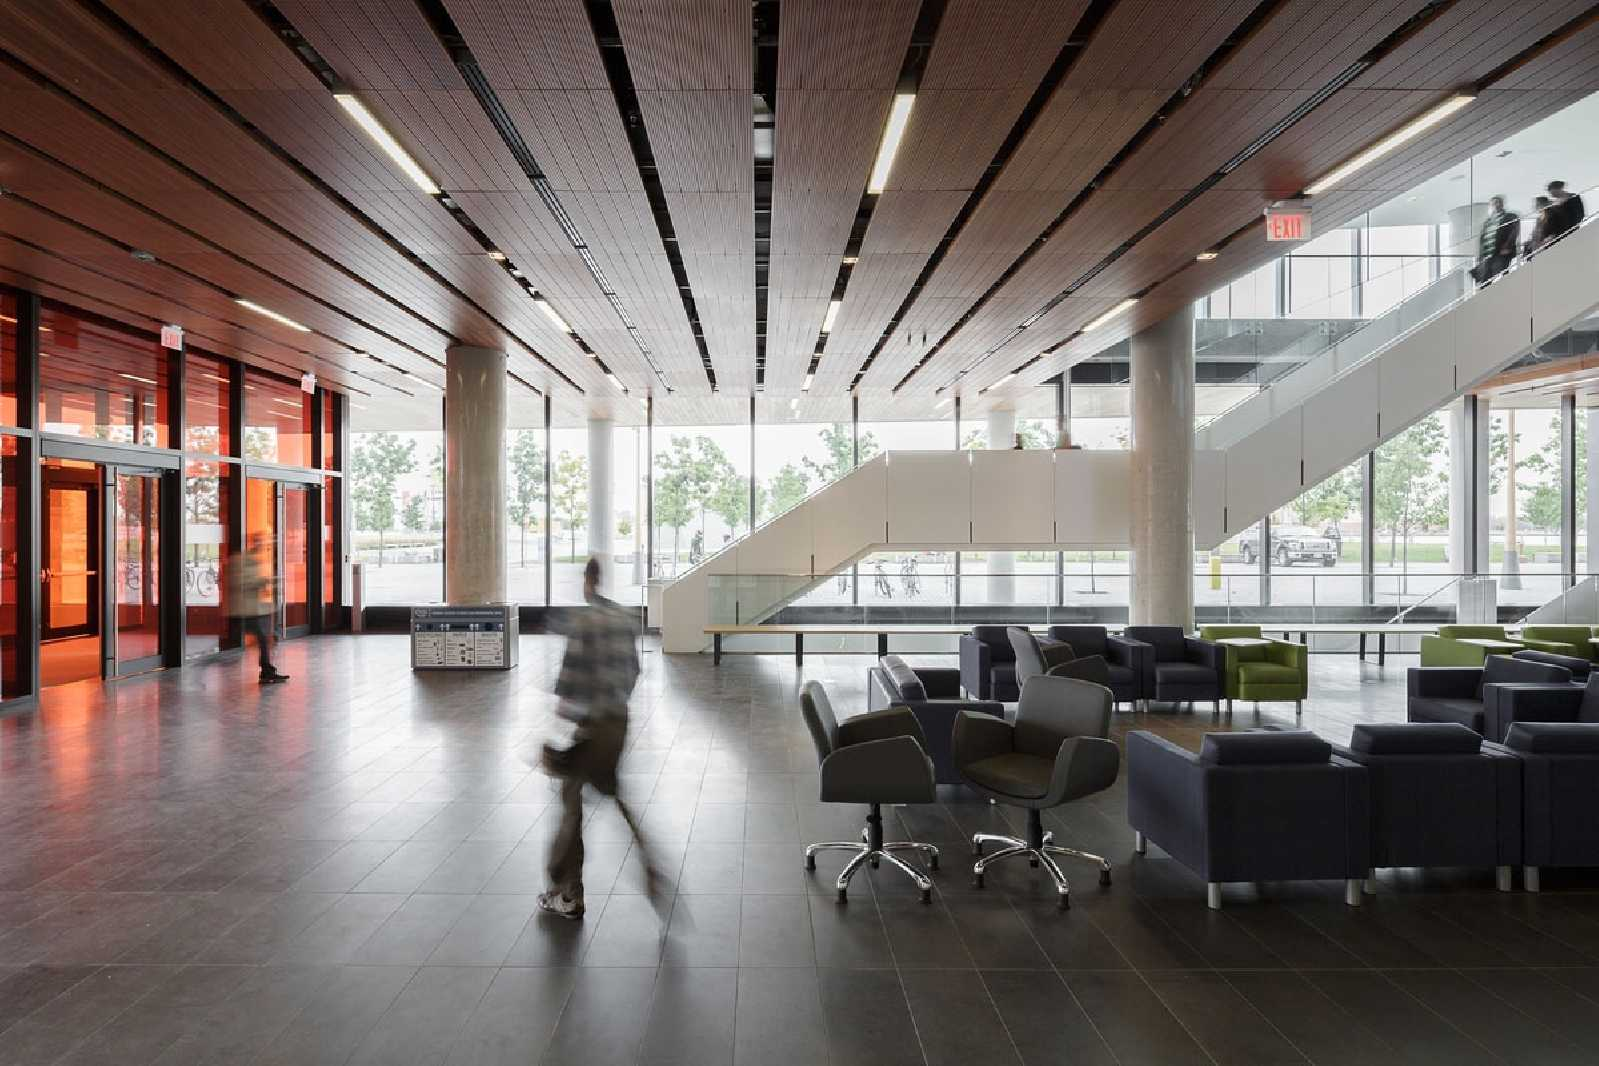 07 George Brown College Waterfront Campus By Stantec KPMB